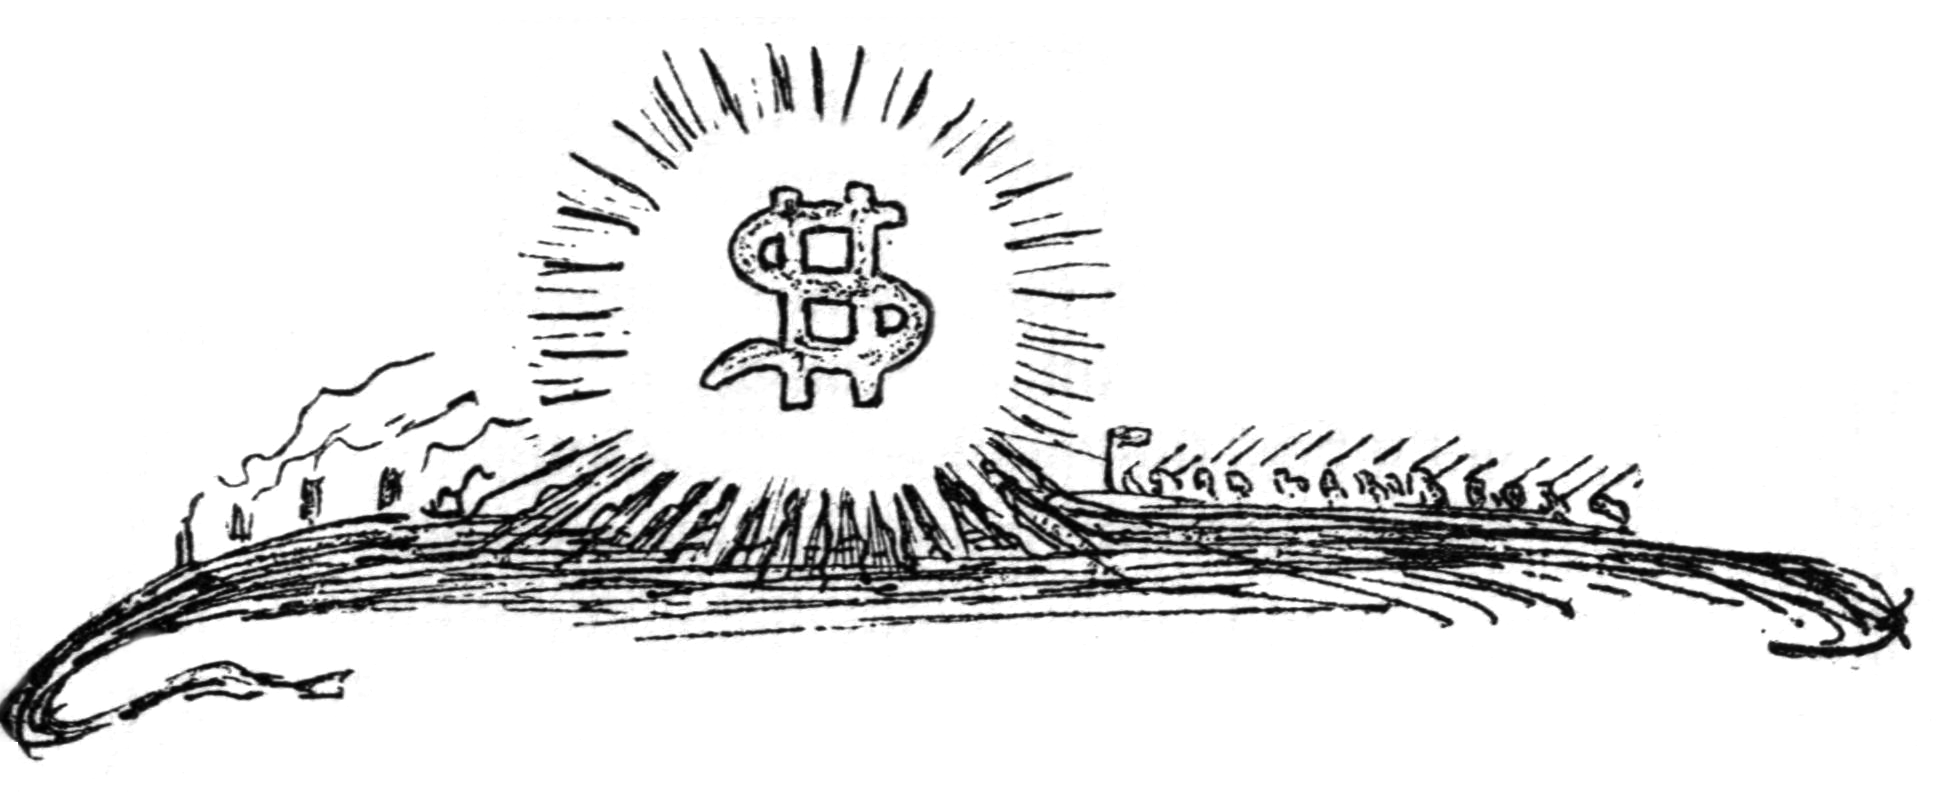 Filethe symboldollar sign by elihu vedderg wikimedia commons filethe symboldollar sign by elihu vedderg biocorpaavc Gallery